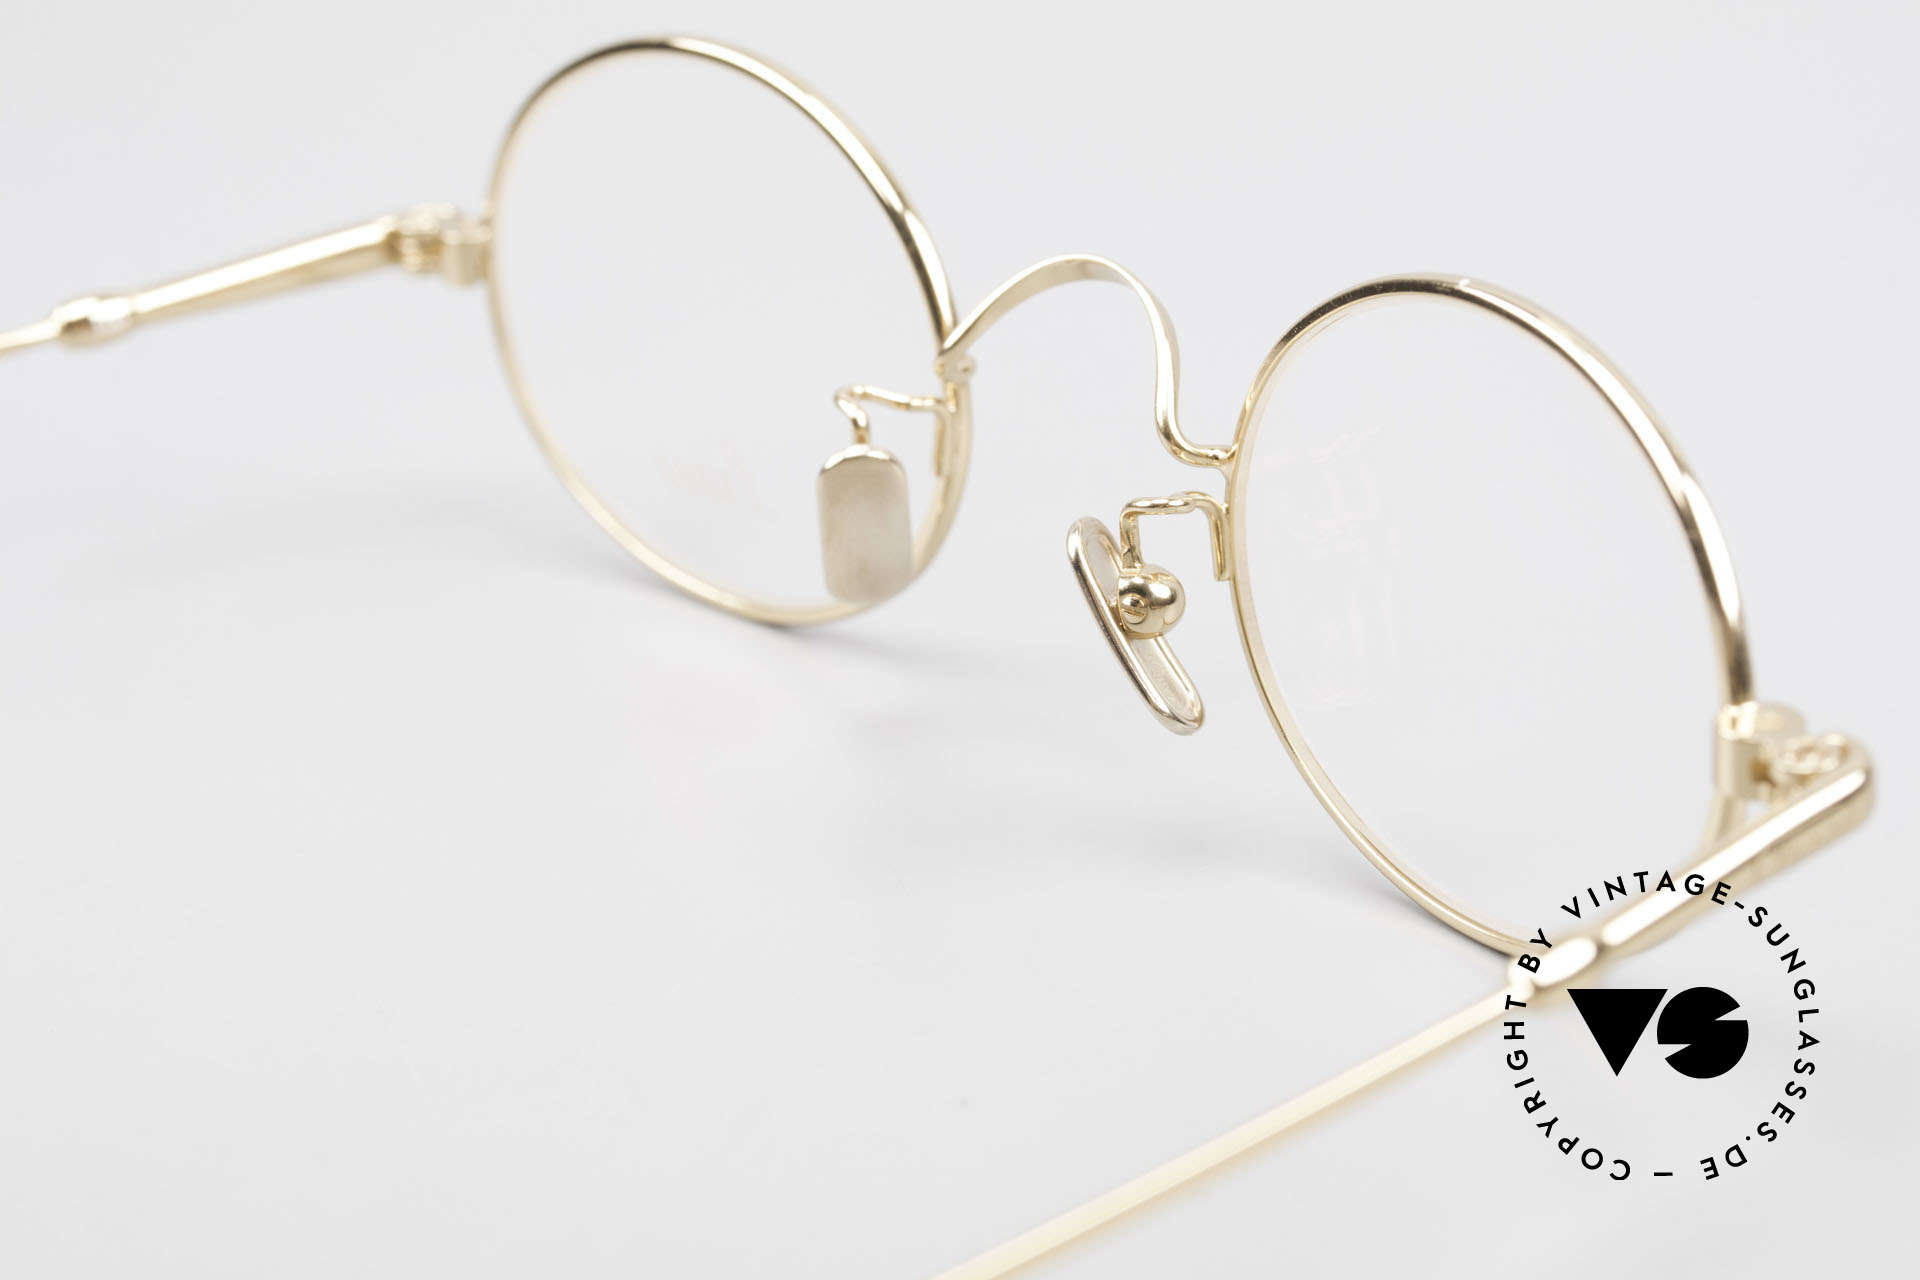 Lunor V 100 Oval Eyeglasses Gold Plated, of course, an unworn original with pure titanium pads, Made for Men and Women